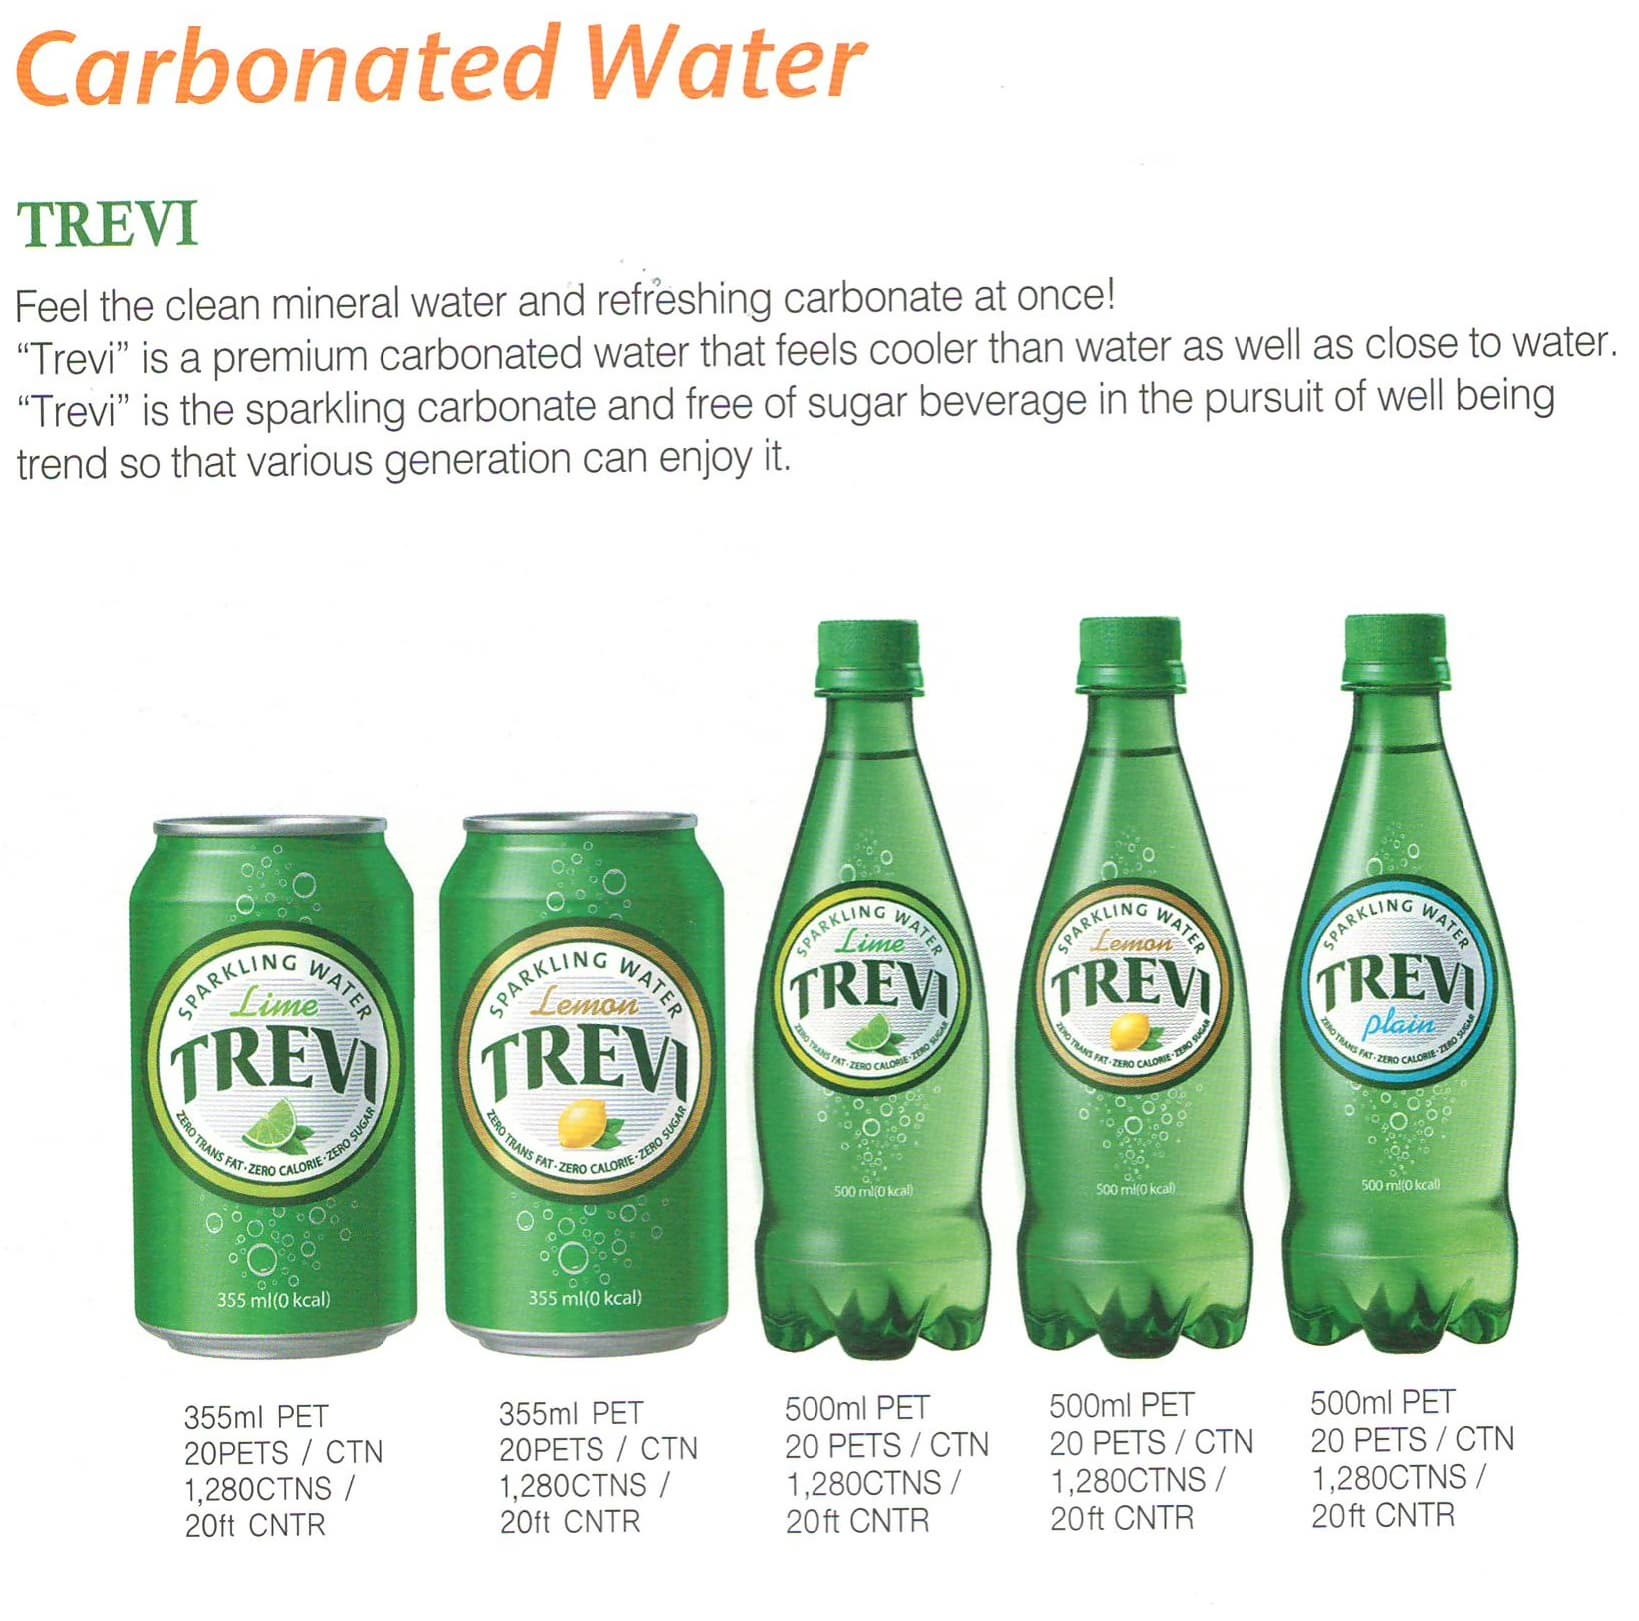 LOTTE ICIS_MINERAL WATER__ LOTTE TREVI_CARBONATED WATER_